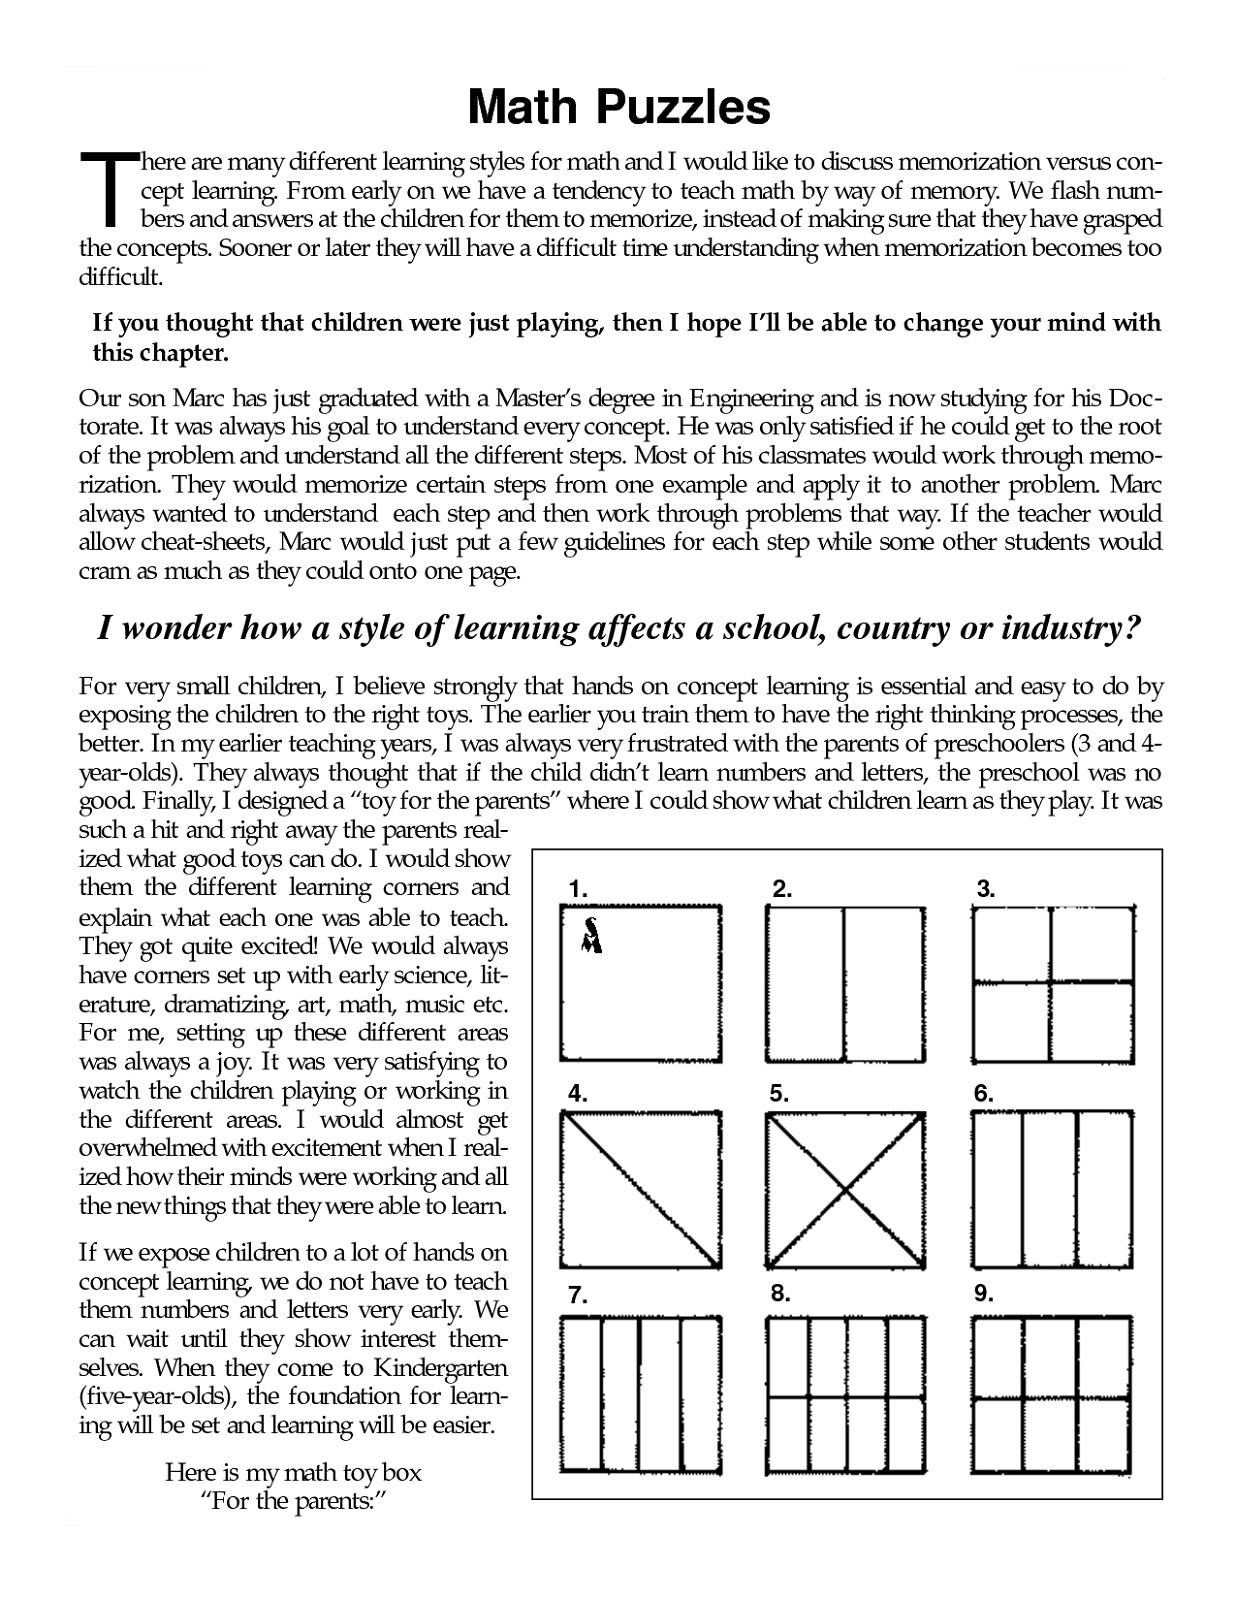 Spring Puzzles Printable Worksheet For Middle School